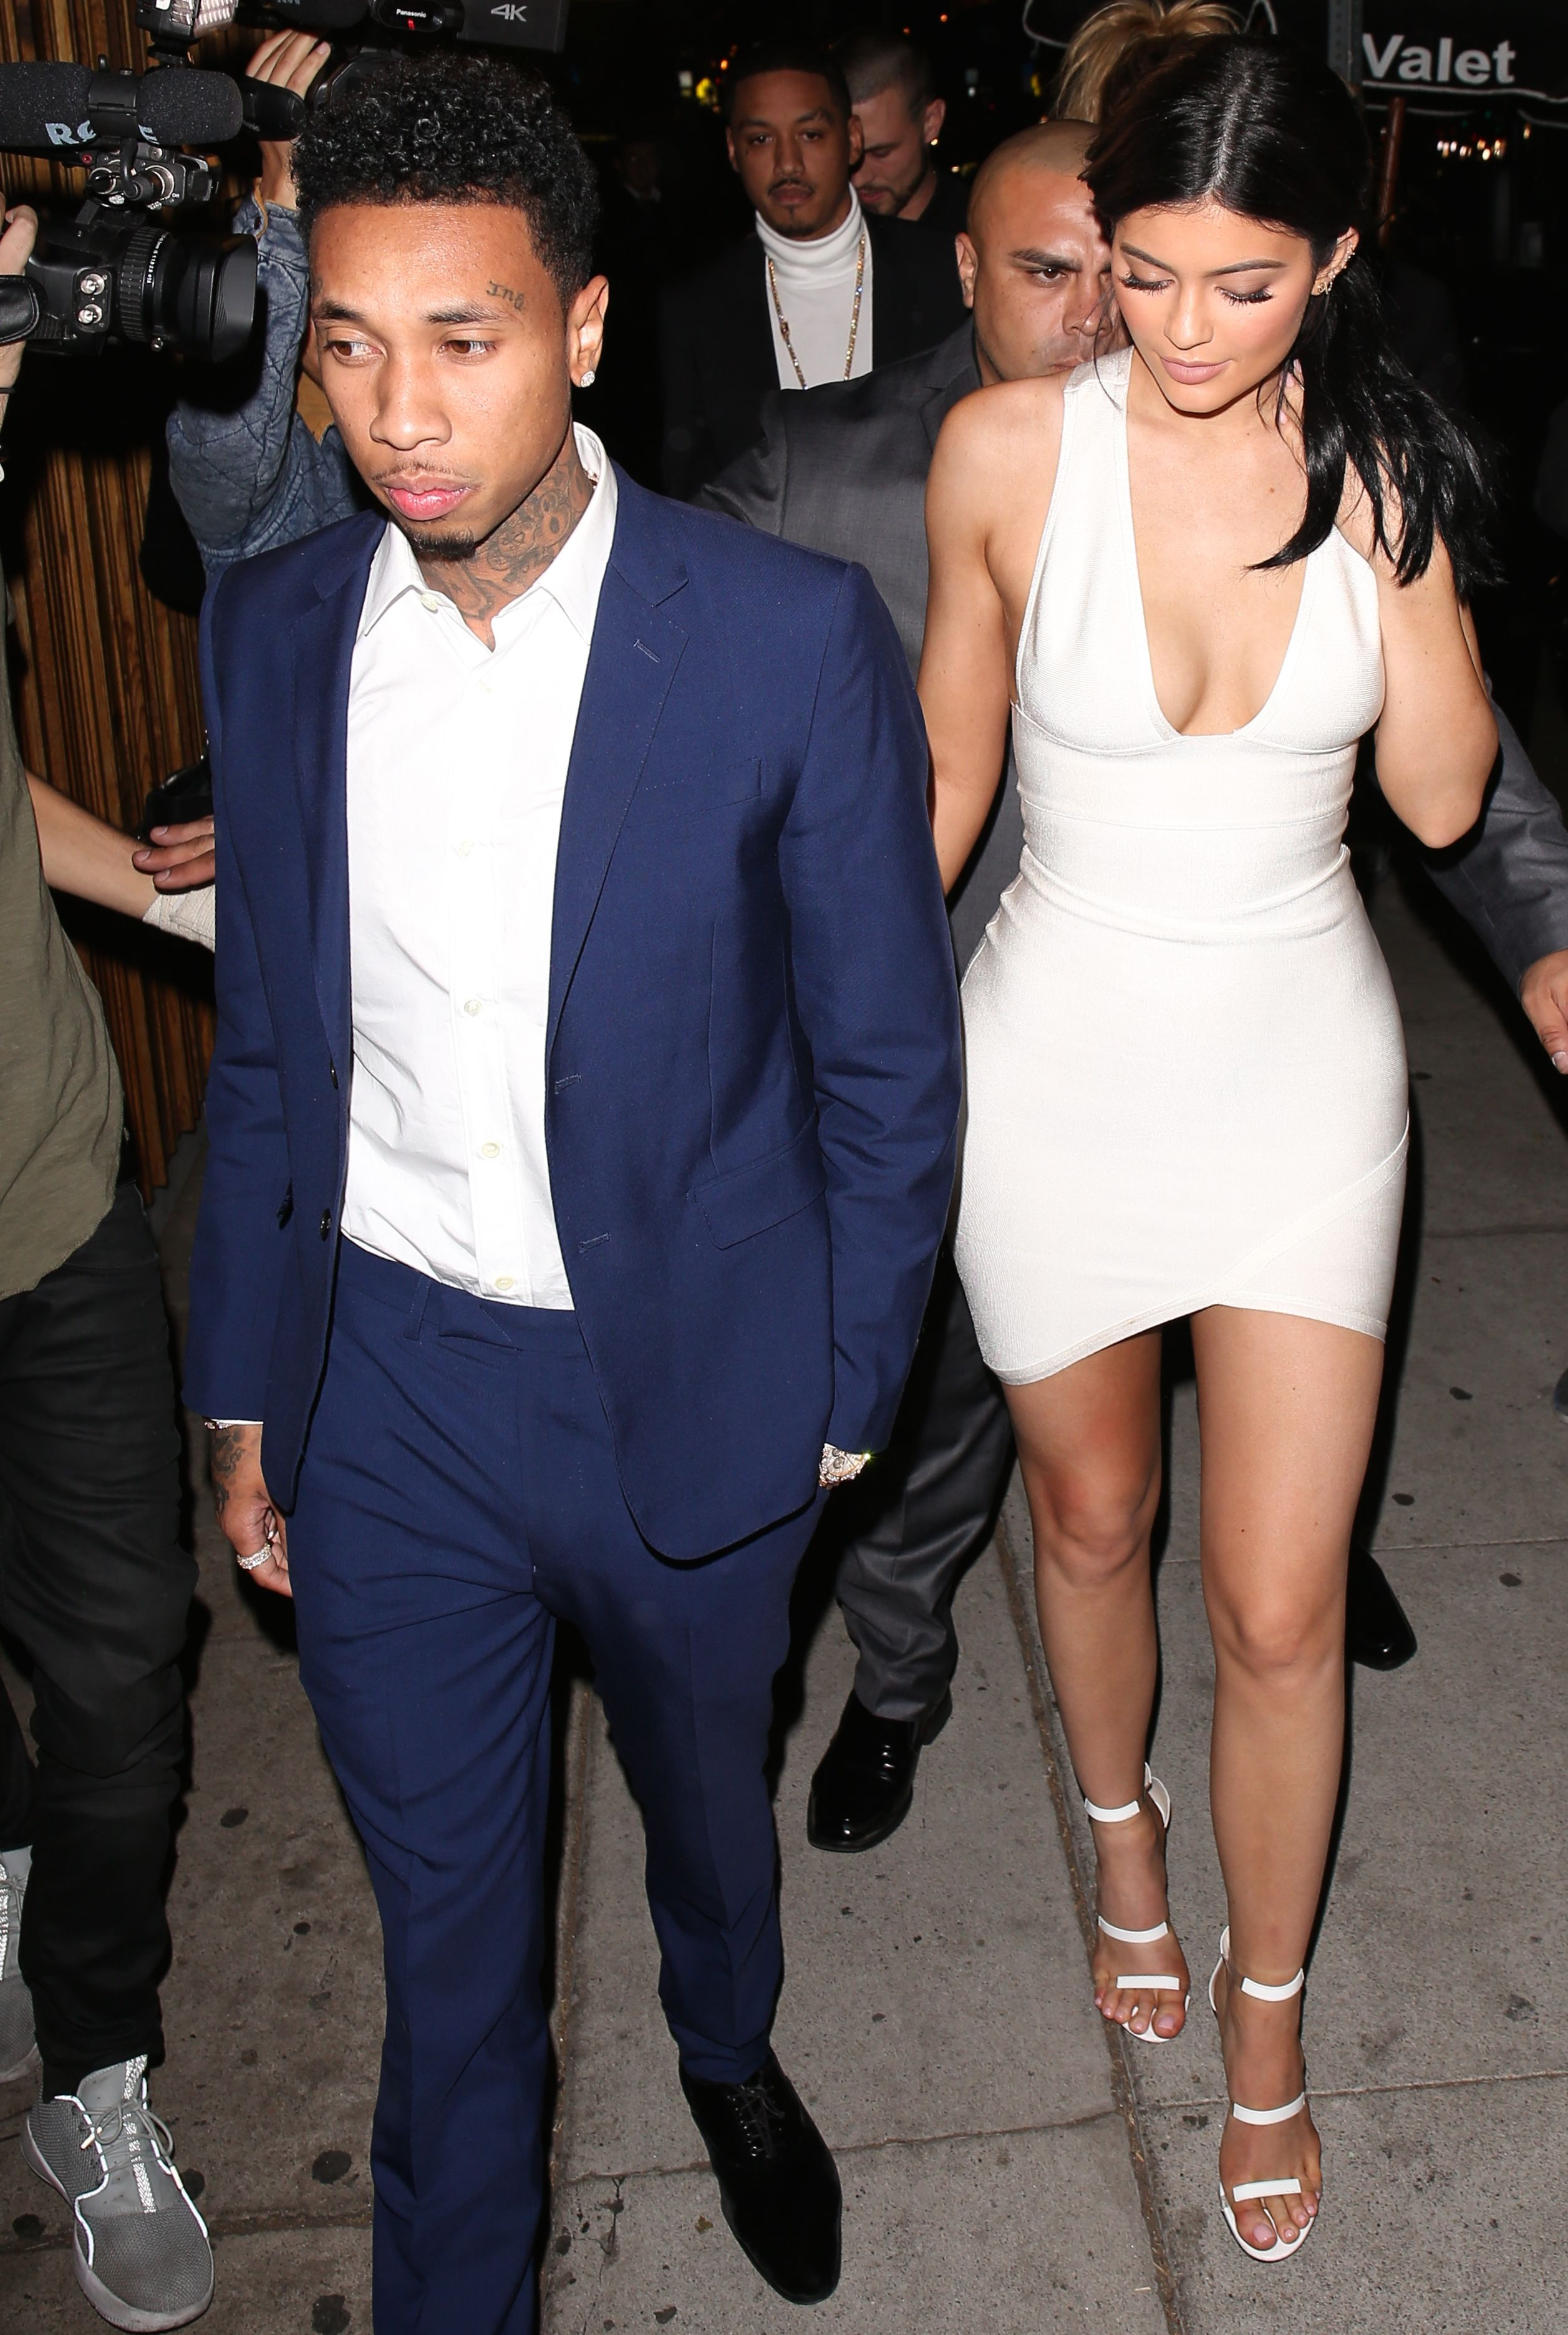 Kylie Jenner Cleavage Pho...